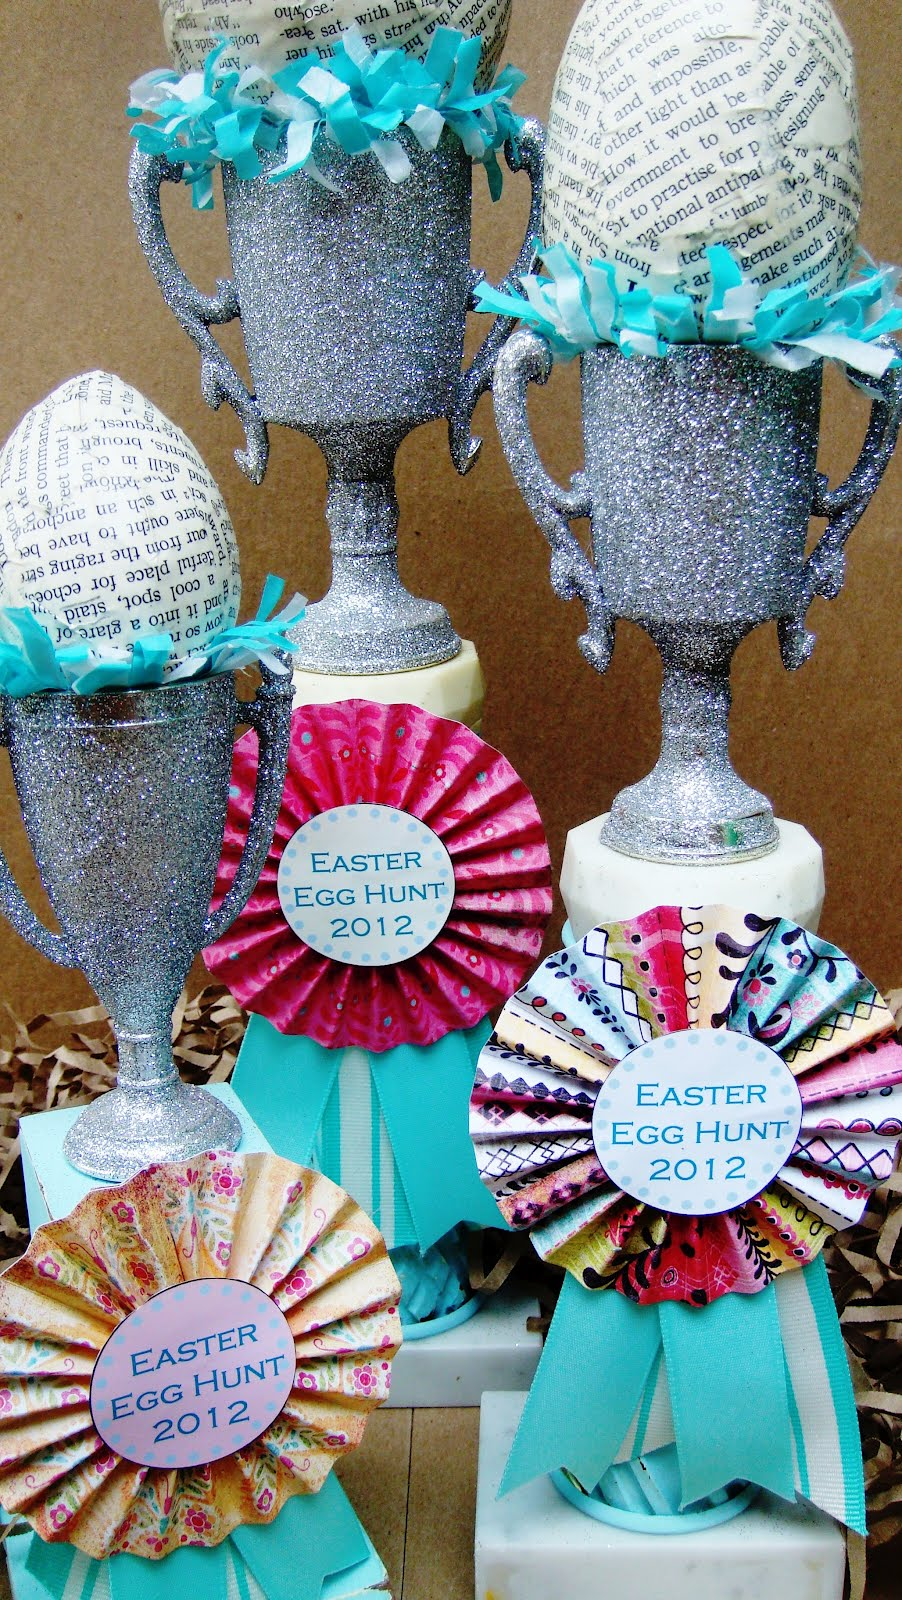 How to make rosettes out of paper - Glue Some Frilly Blue White Tissue Paper Garland From Melissa Frances Inside The Trophy Cup Edge 7 Make Accordian Rosettes Out Of Paper